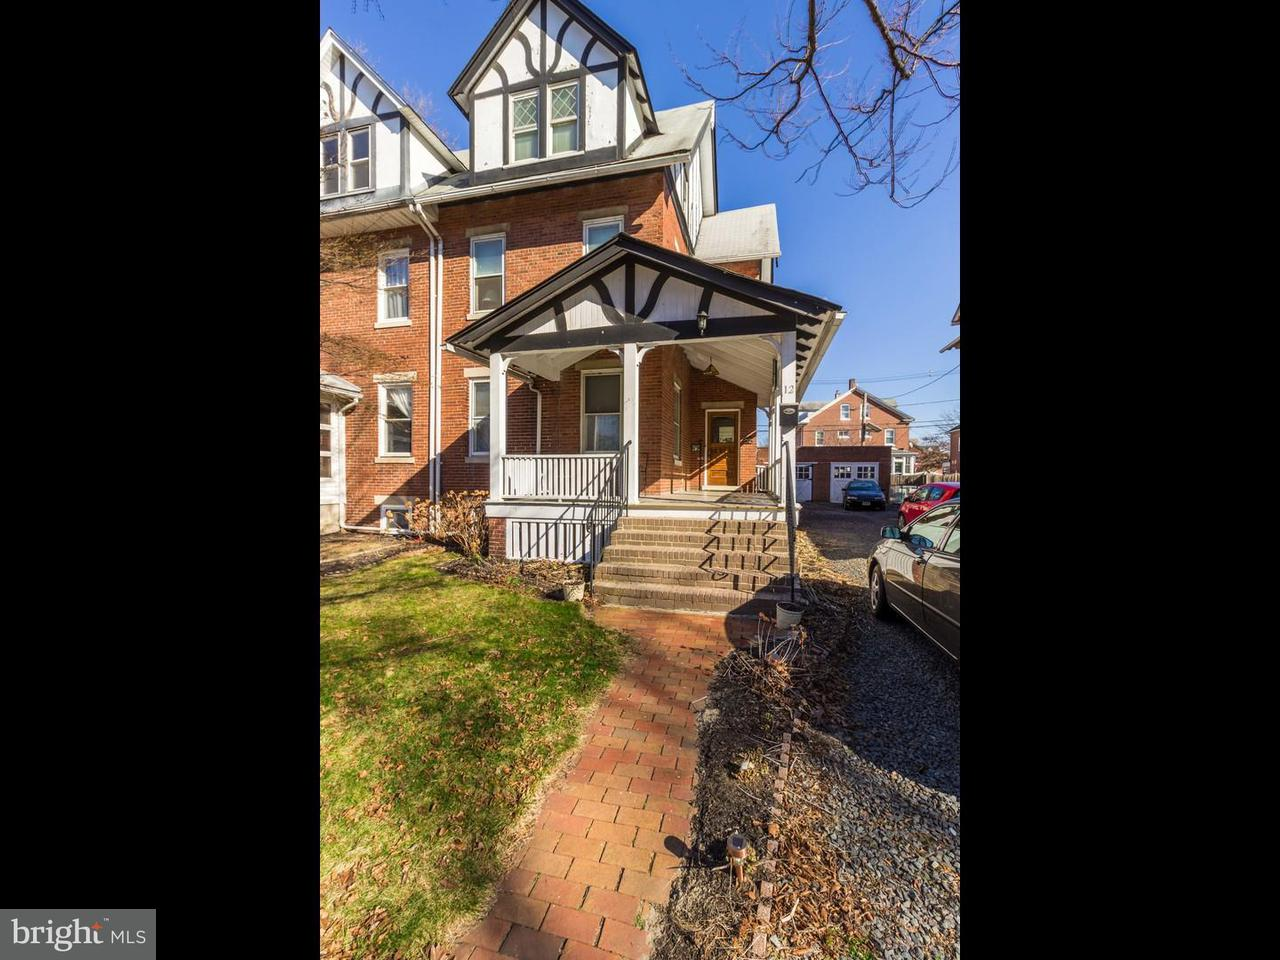 Townhouse for Sale at 12 6TH Avenue Roebling, New Jersey 08554 United States